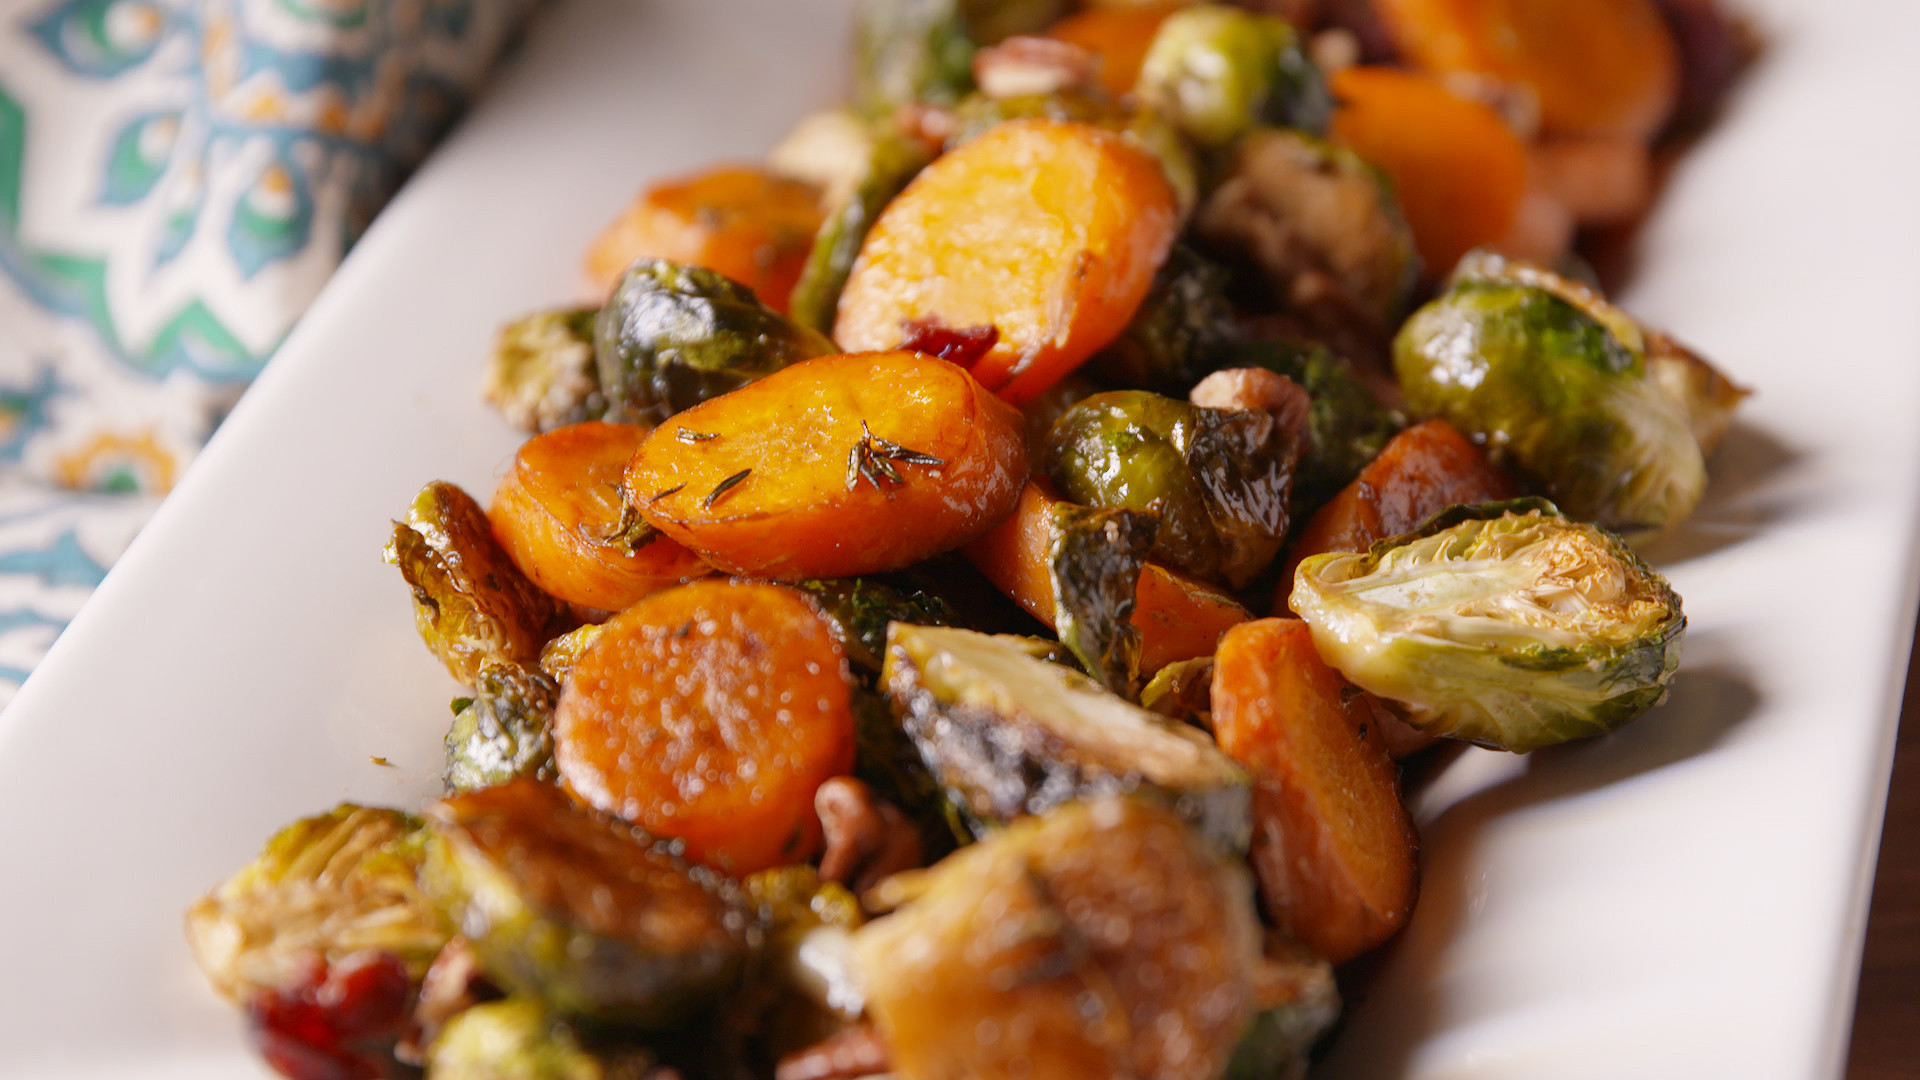 Roasted Vegetables For Thanksgiving  17 Best Roasted Ve ables Recipes How To Roast